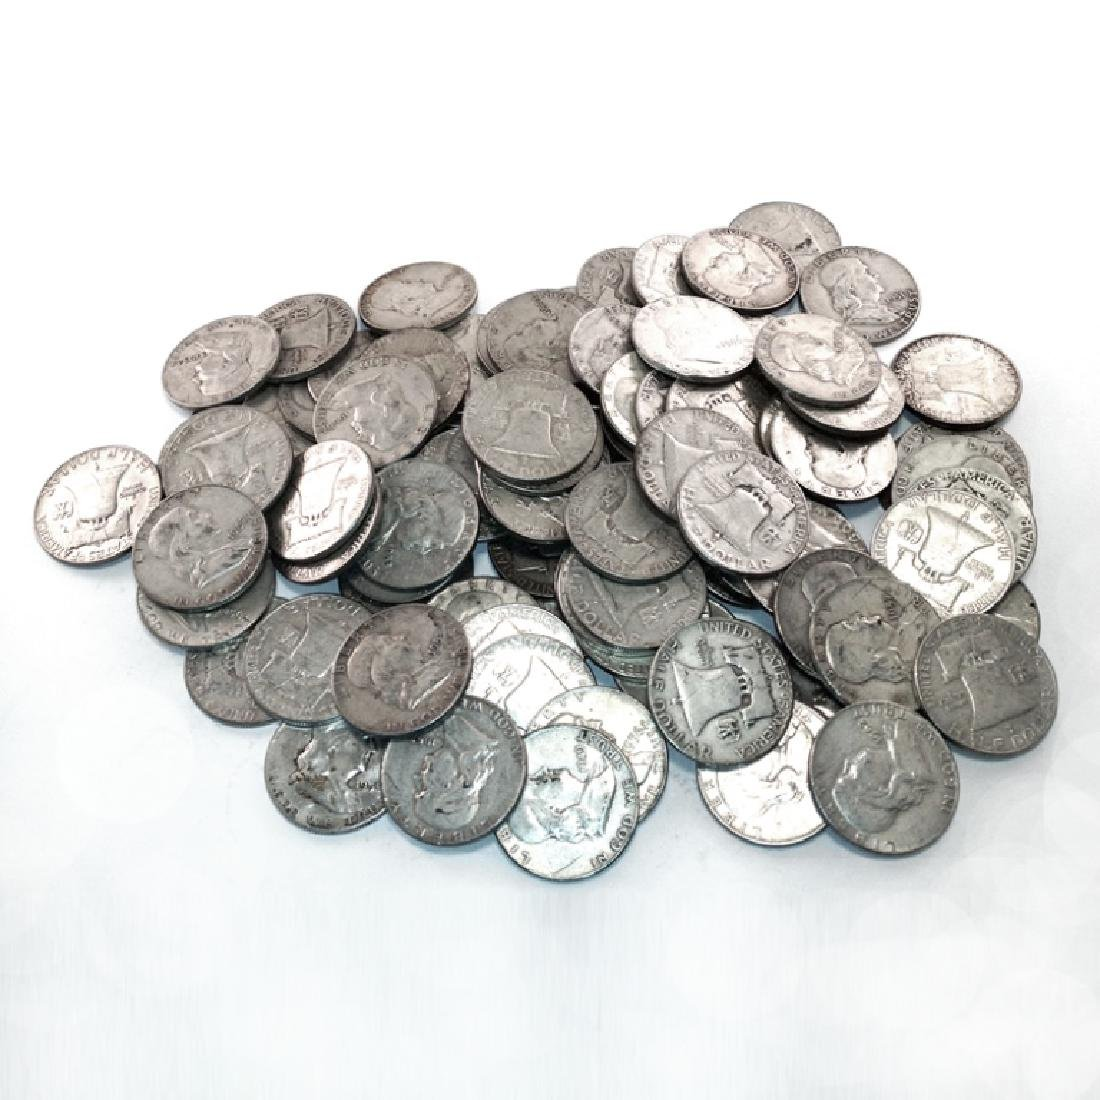 Collection of 50 pcs. Franklin Halves 90% Silver